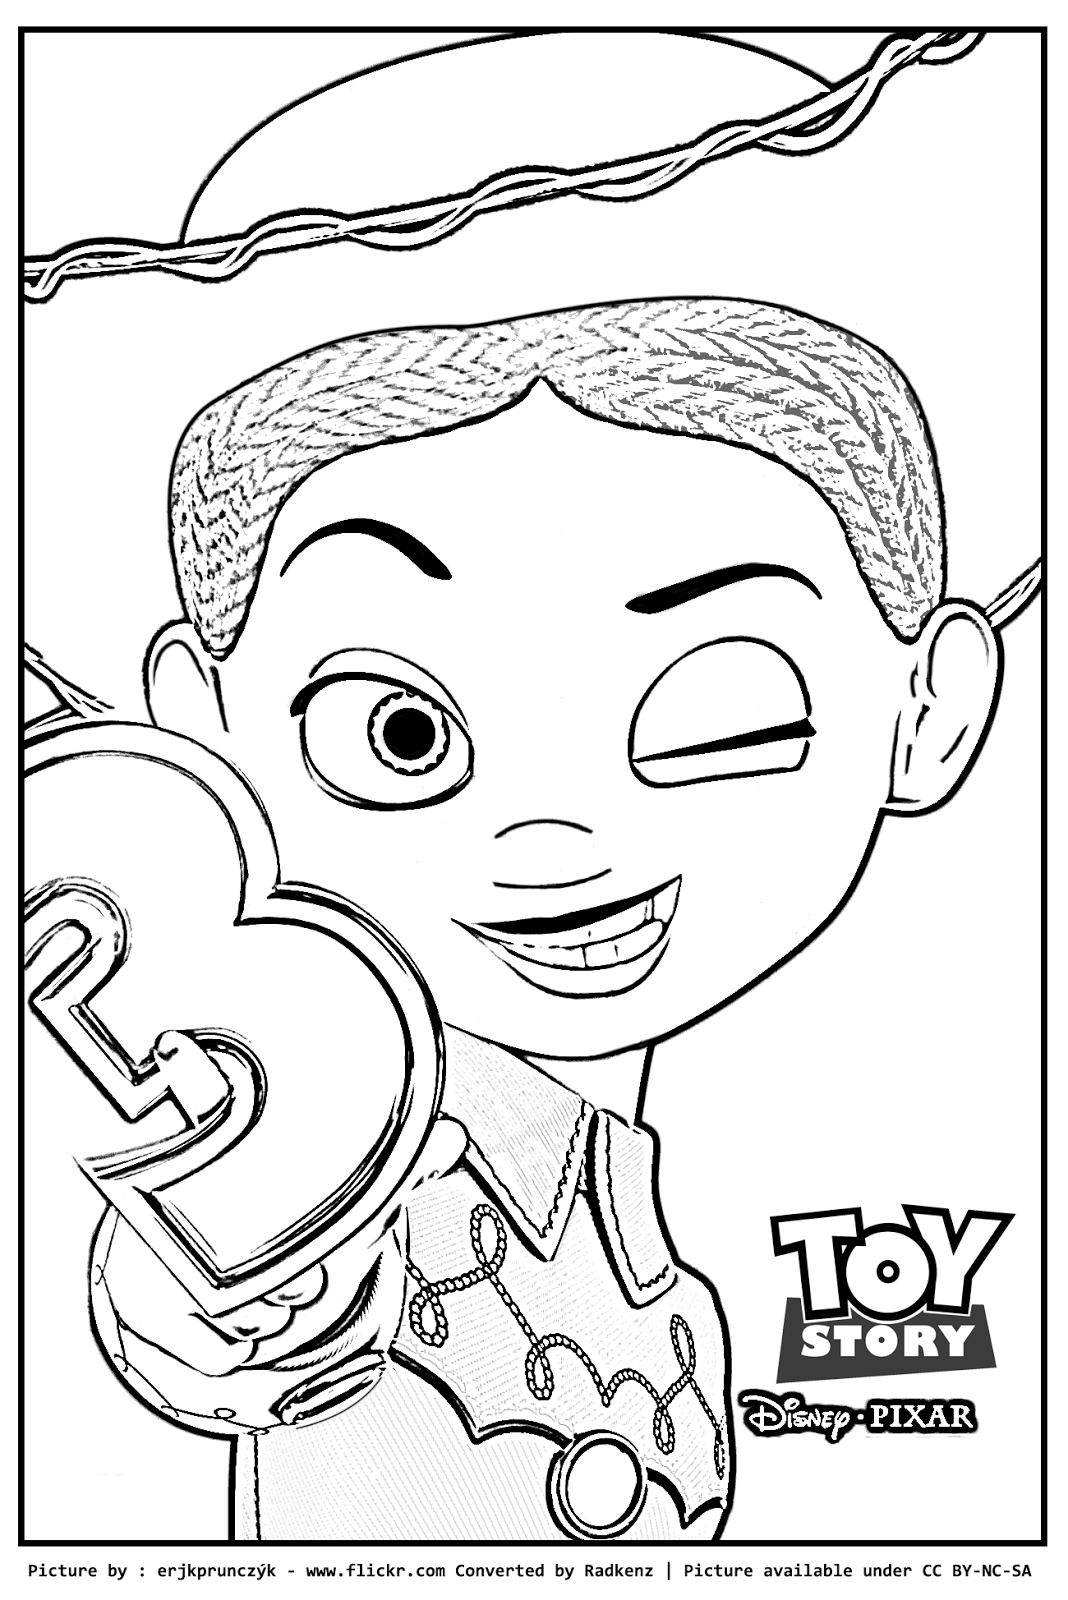 Jessie Toy Story Coloring Page